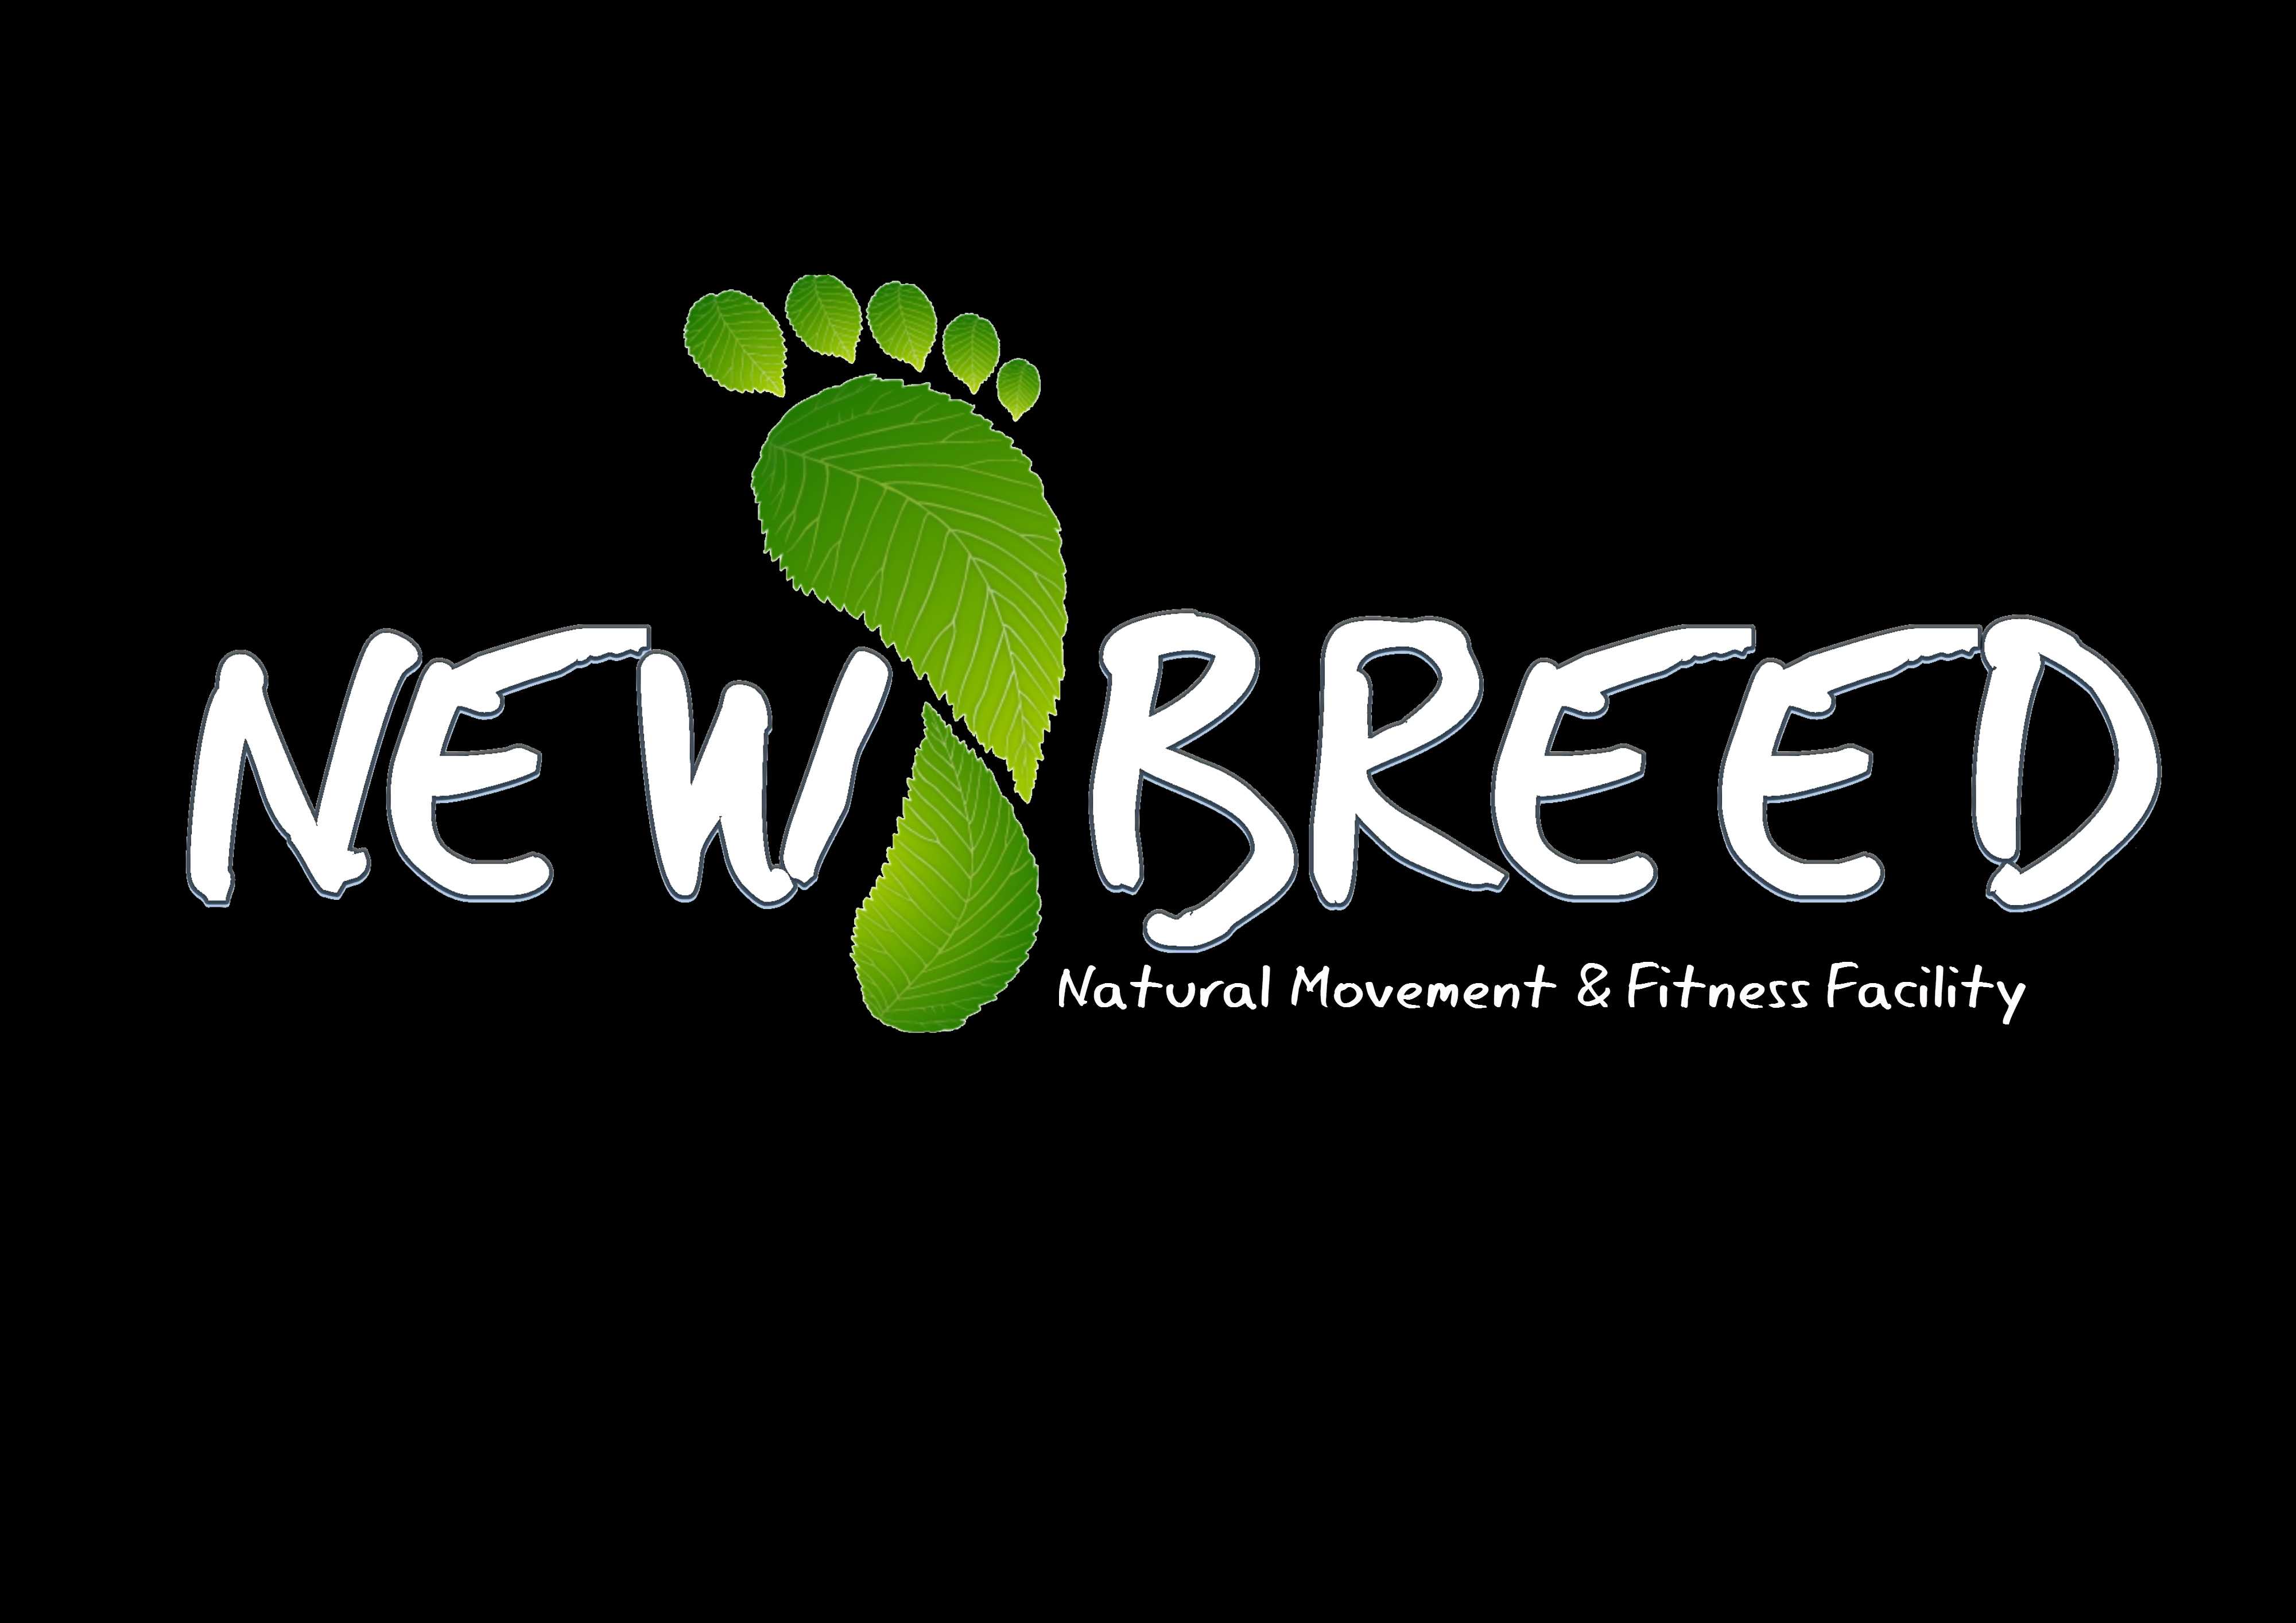 New Breed MMA & Natural Movement